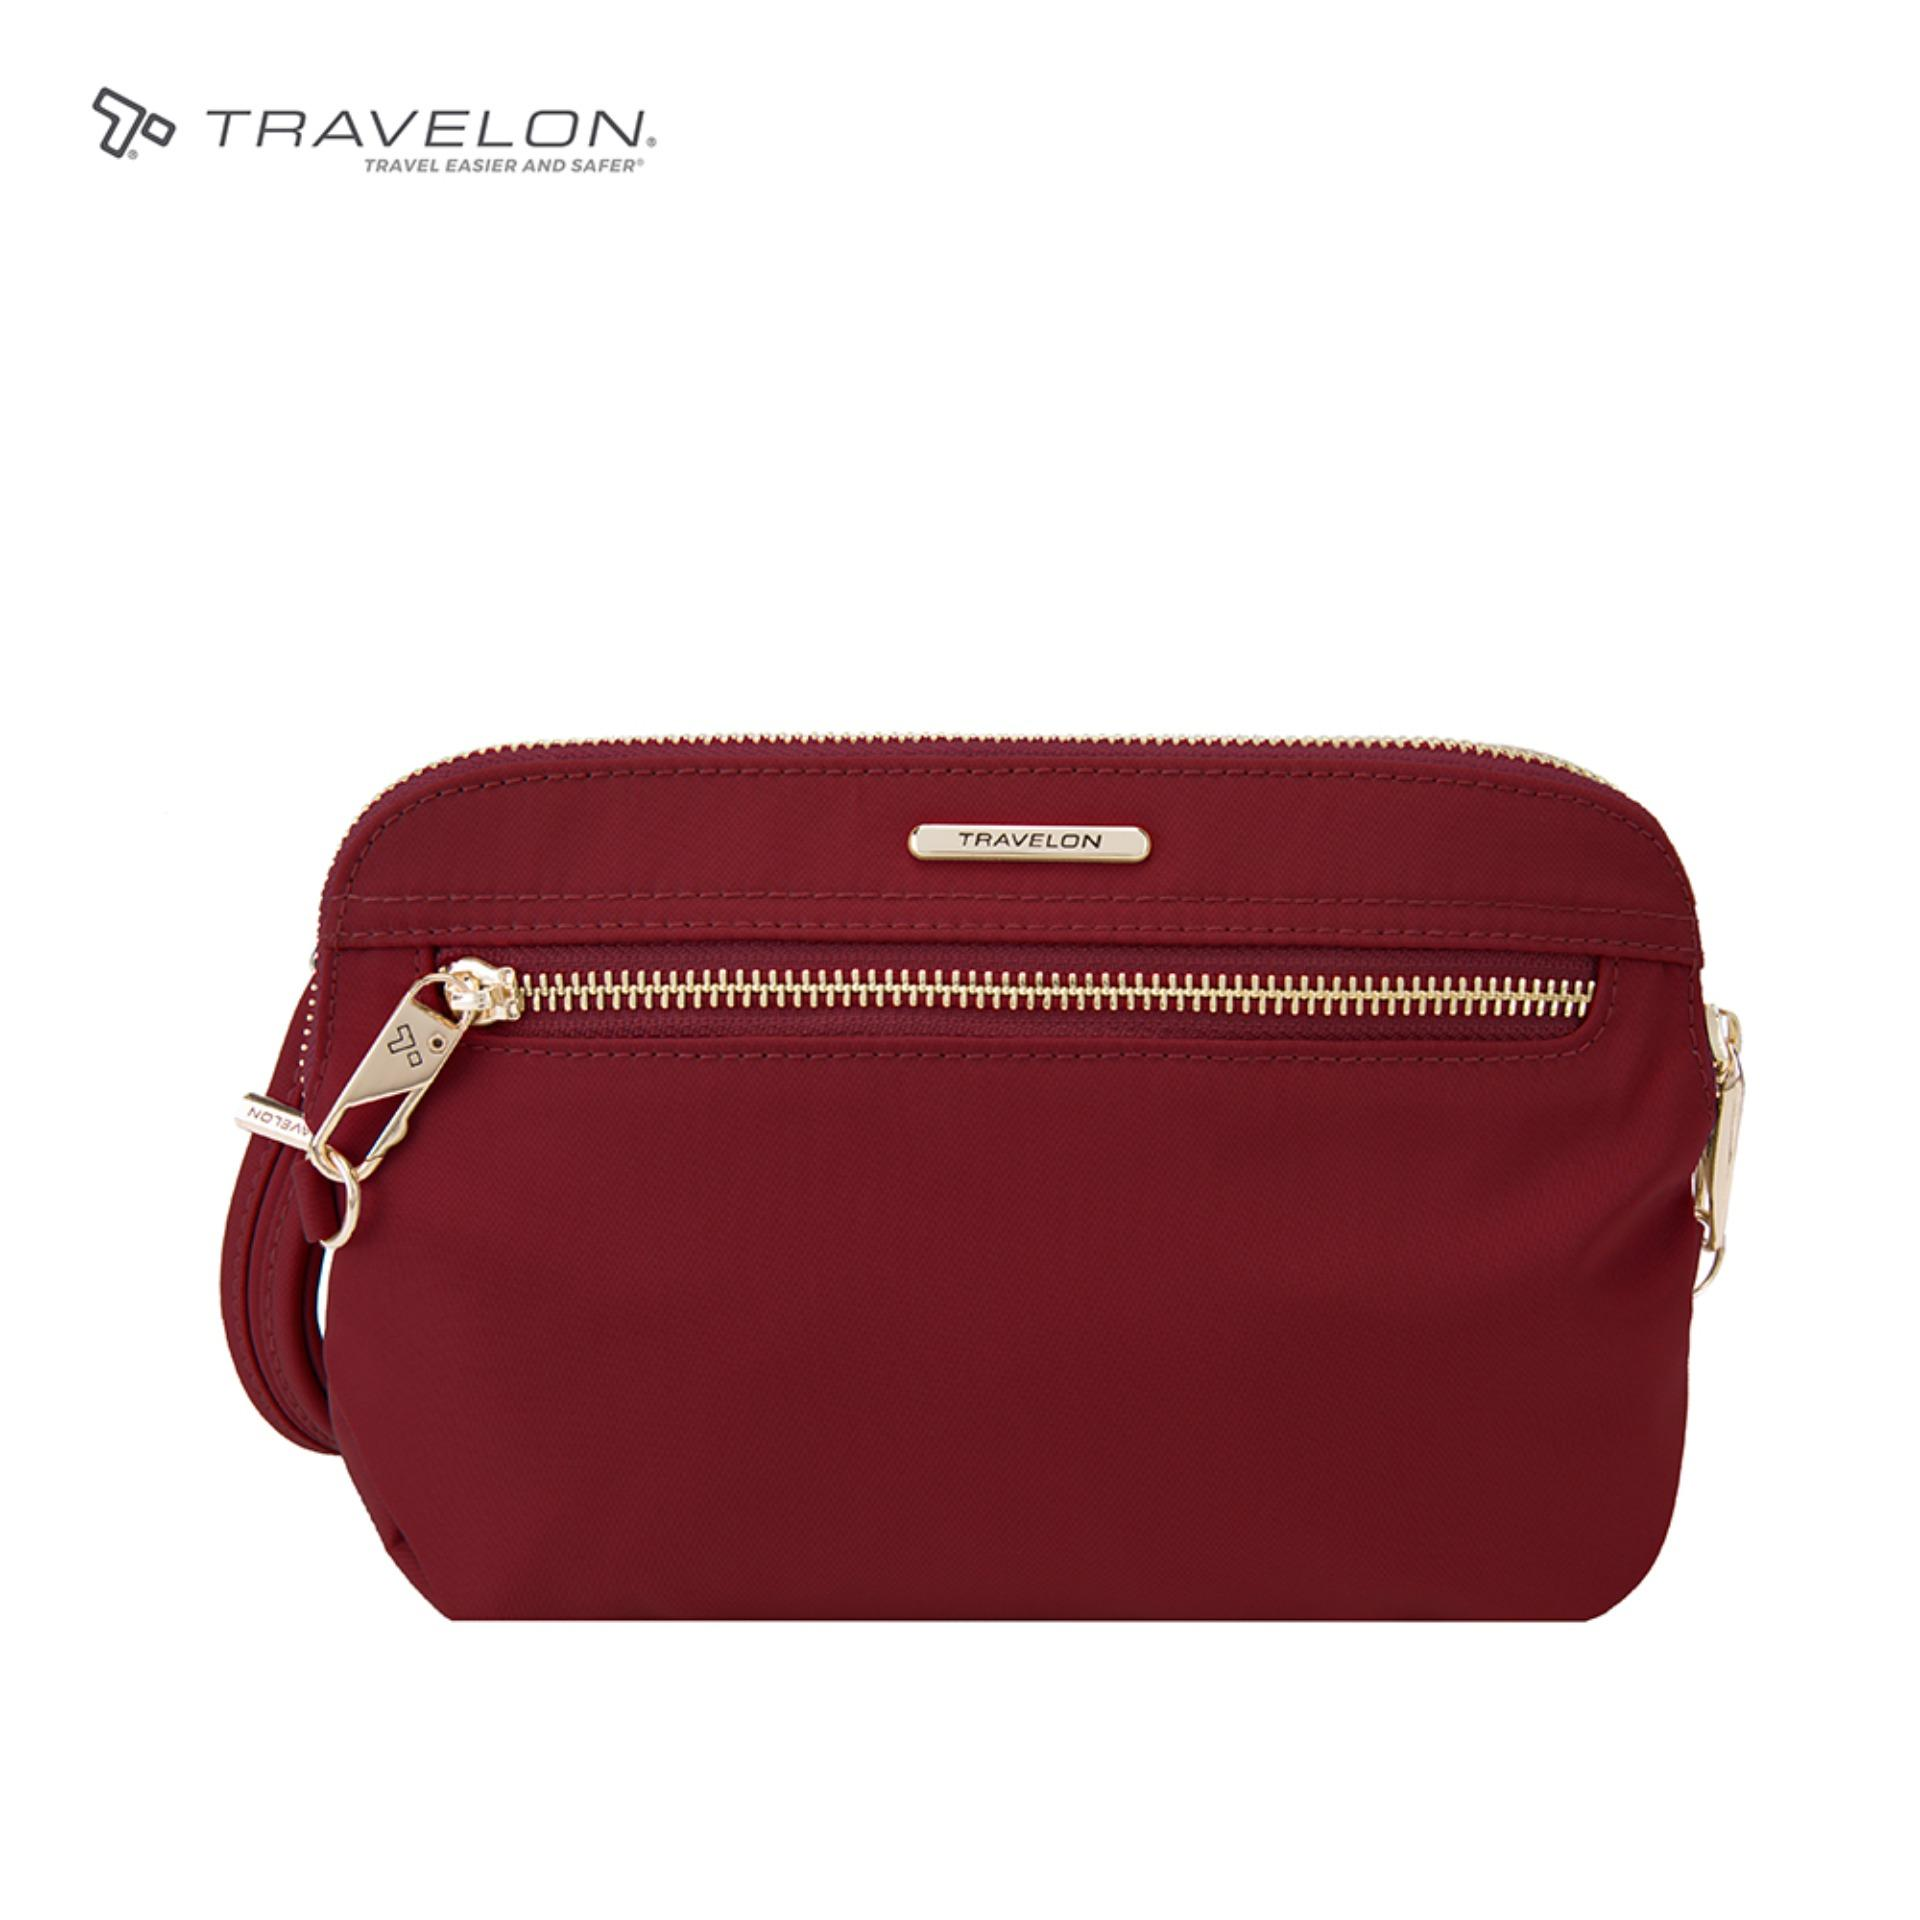 0fa9d56e9c51 Travelon Anti-Theft RFID Protected Tailored Travel Safety 3-way Convertible  Clutch Crossbody